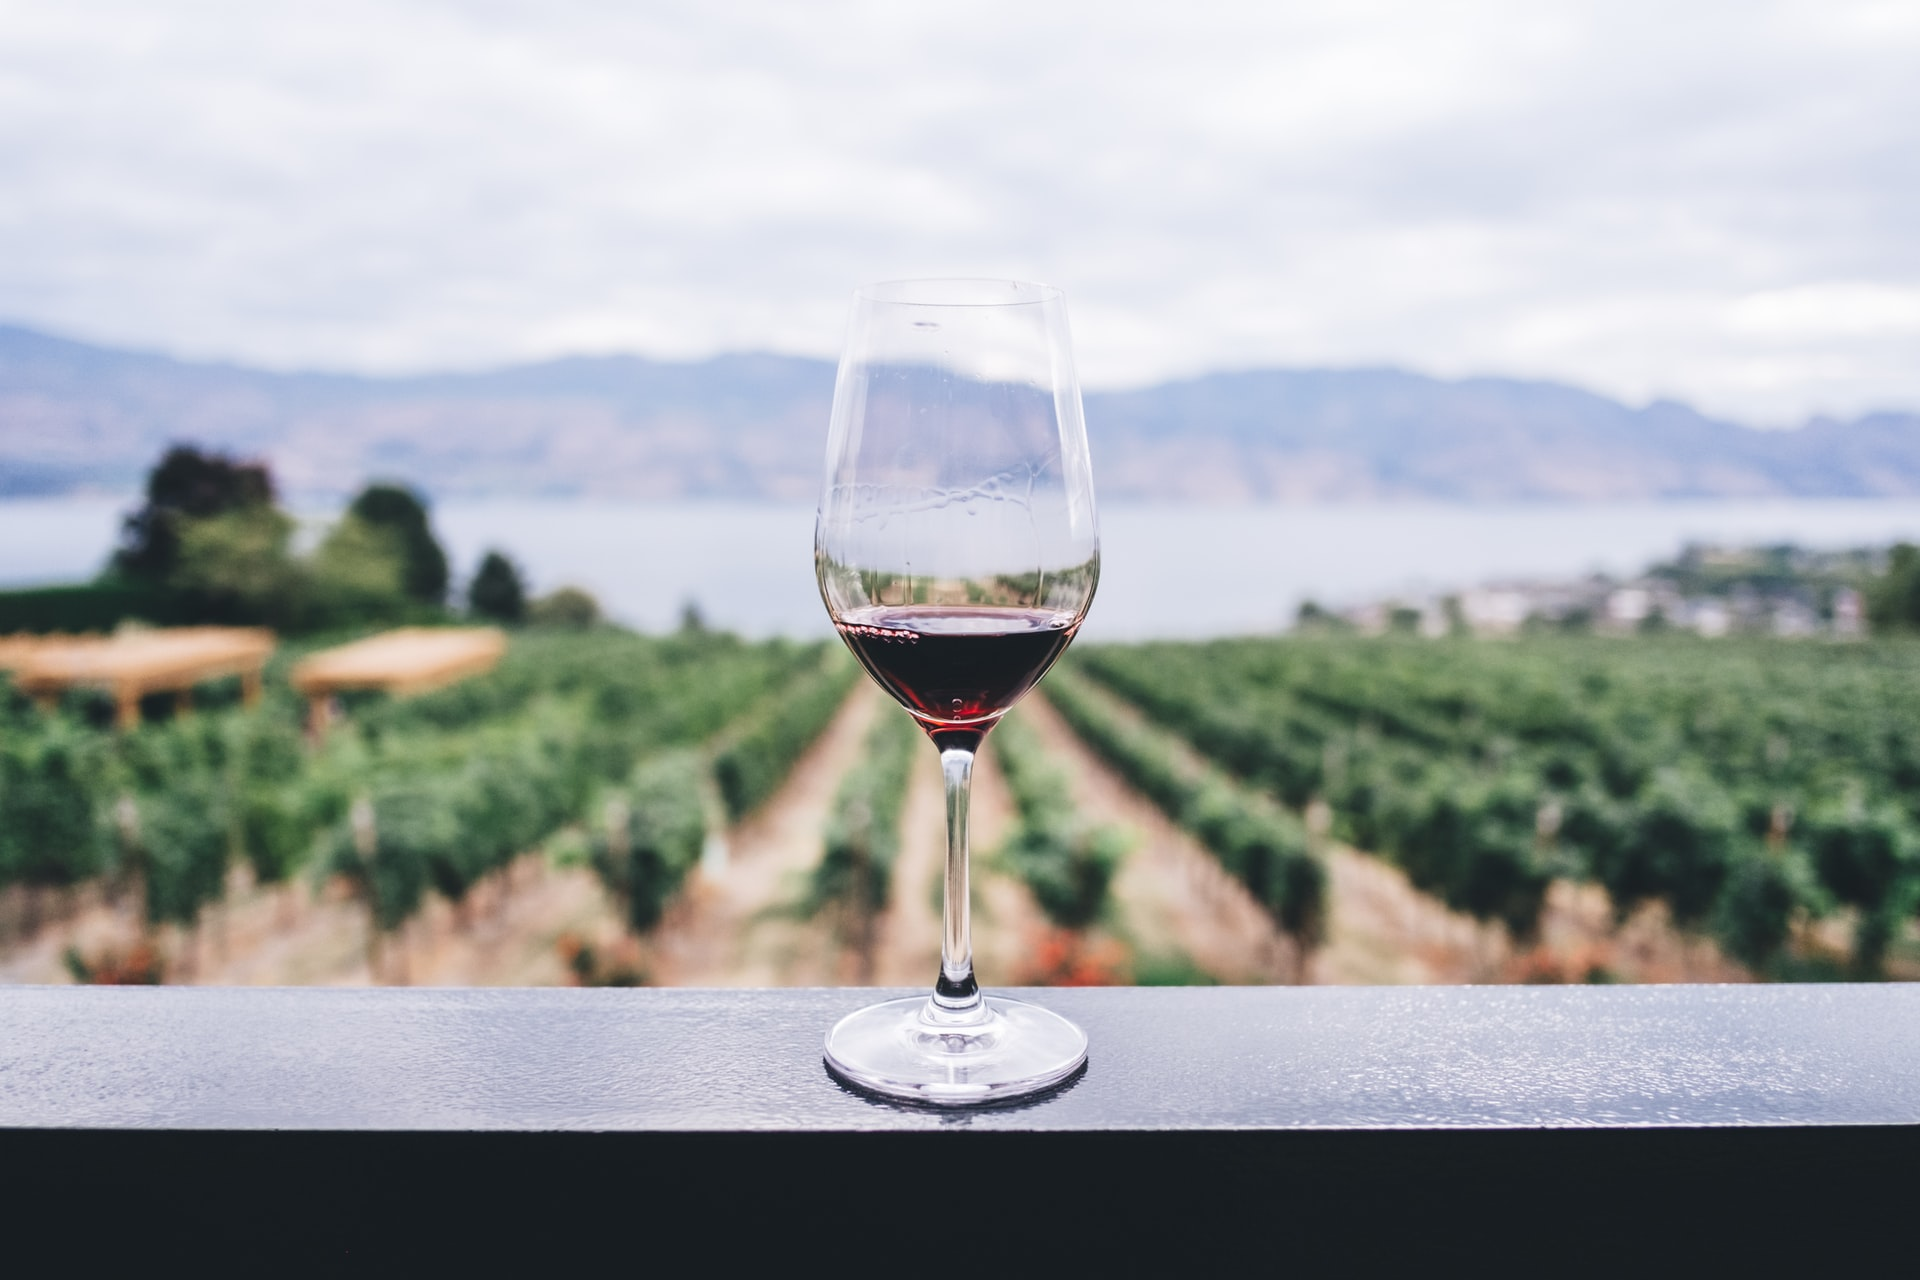 World's First Entirely Virtual Wine Launched by Eric Schmidt and Jeff Bezos